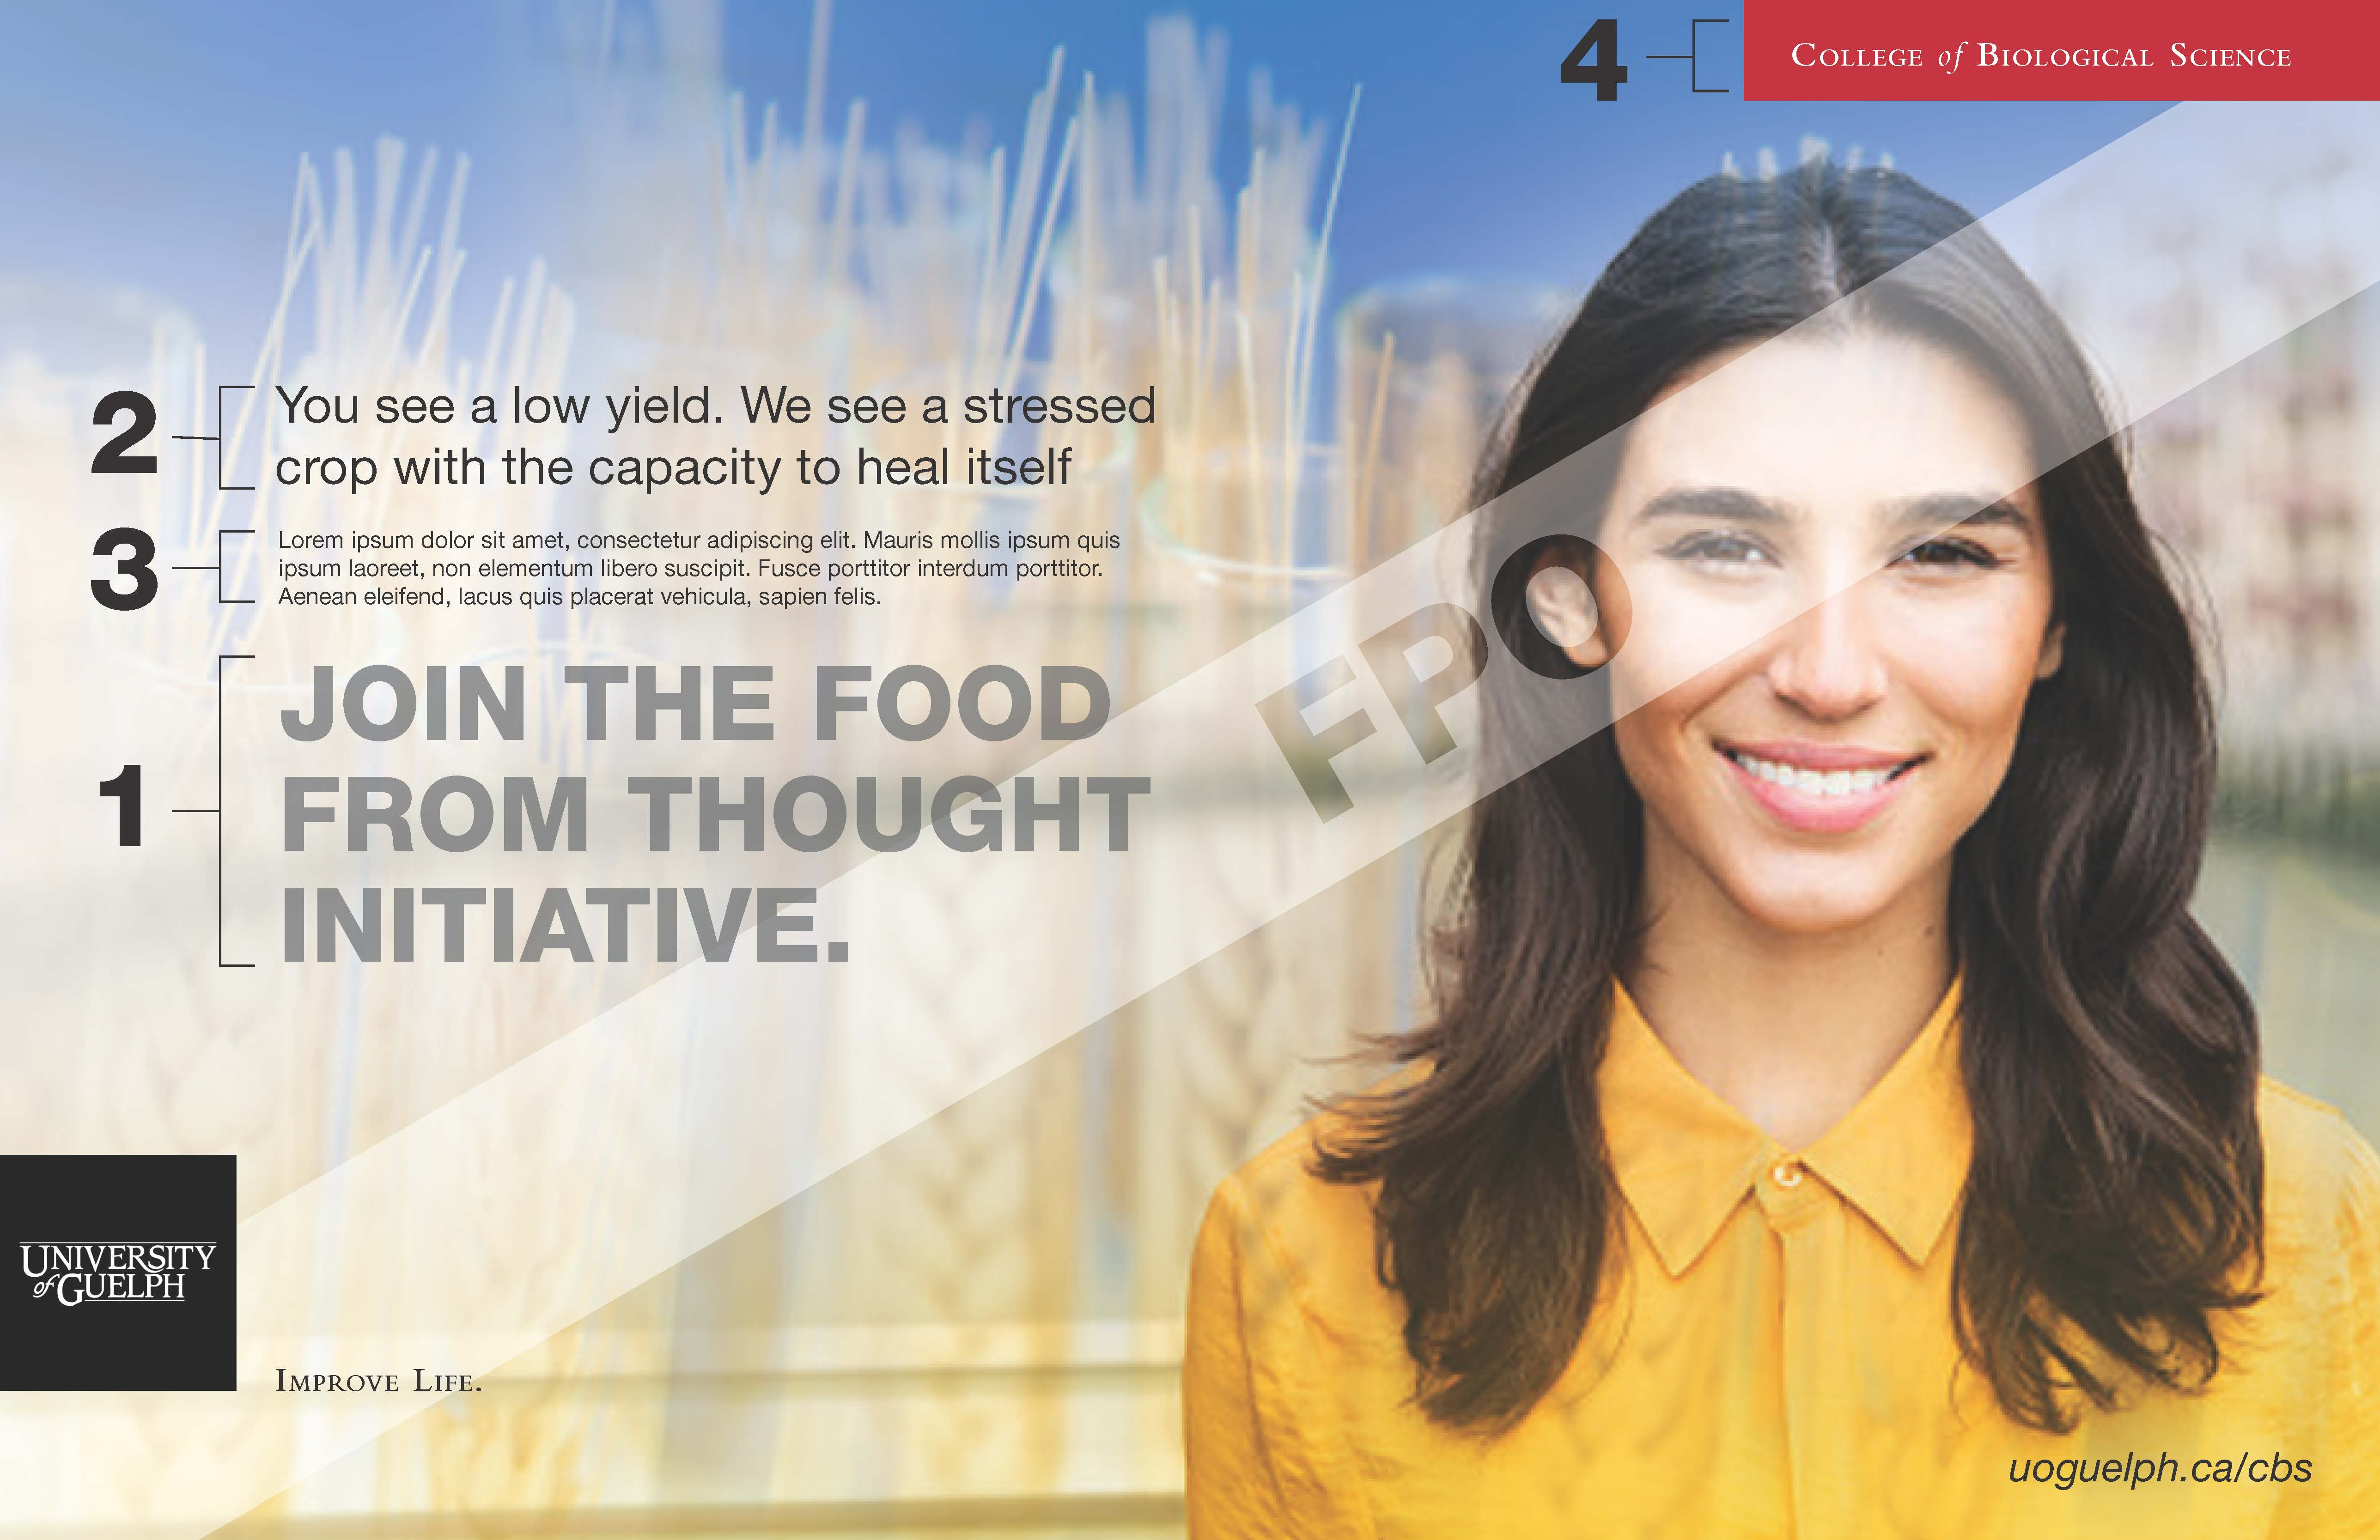 Sample adverstisement indicating four elements of an ad layout